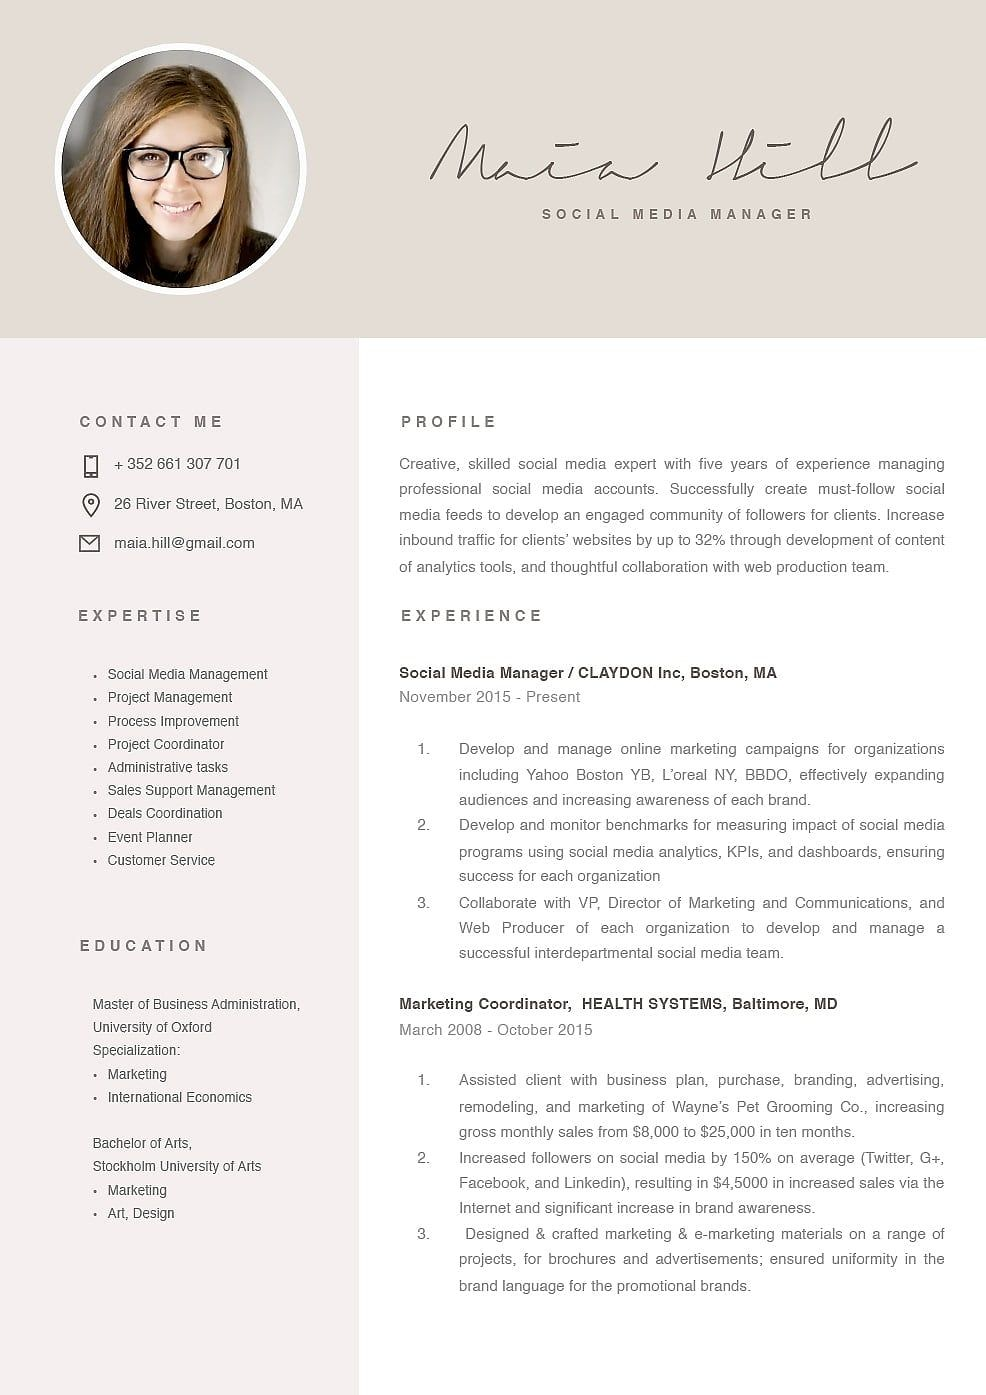 Modern Resume Template 120100 - Modern resume template, Marketing resume, Modern resume, Resume layout, Resume, Marketing strategy social media - Modern resume template 120100 (color brown)  Choose from over 100 professionally designed resume templates in Microsoft Word and Pages  Easy to use